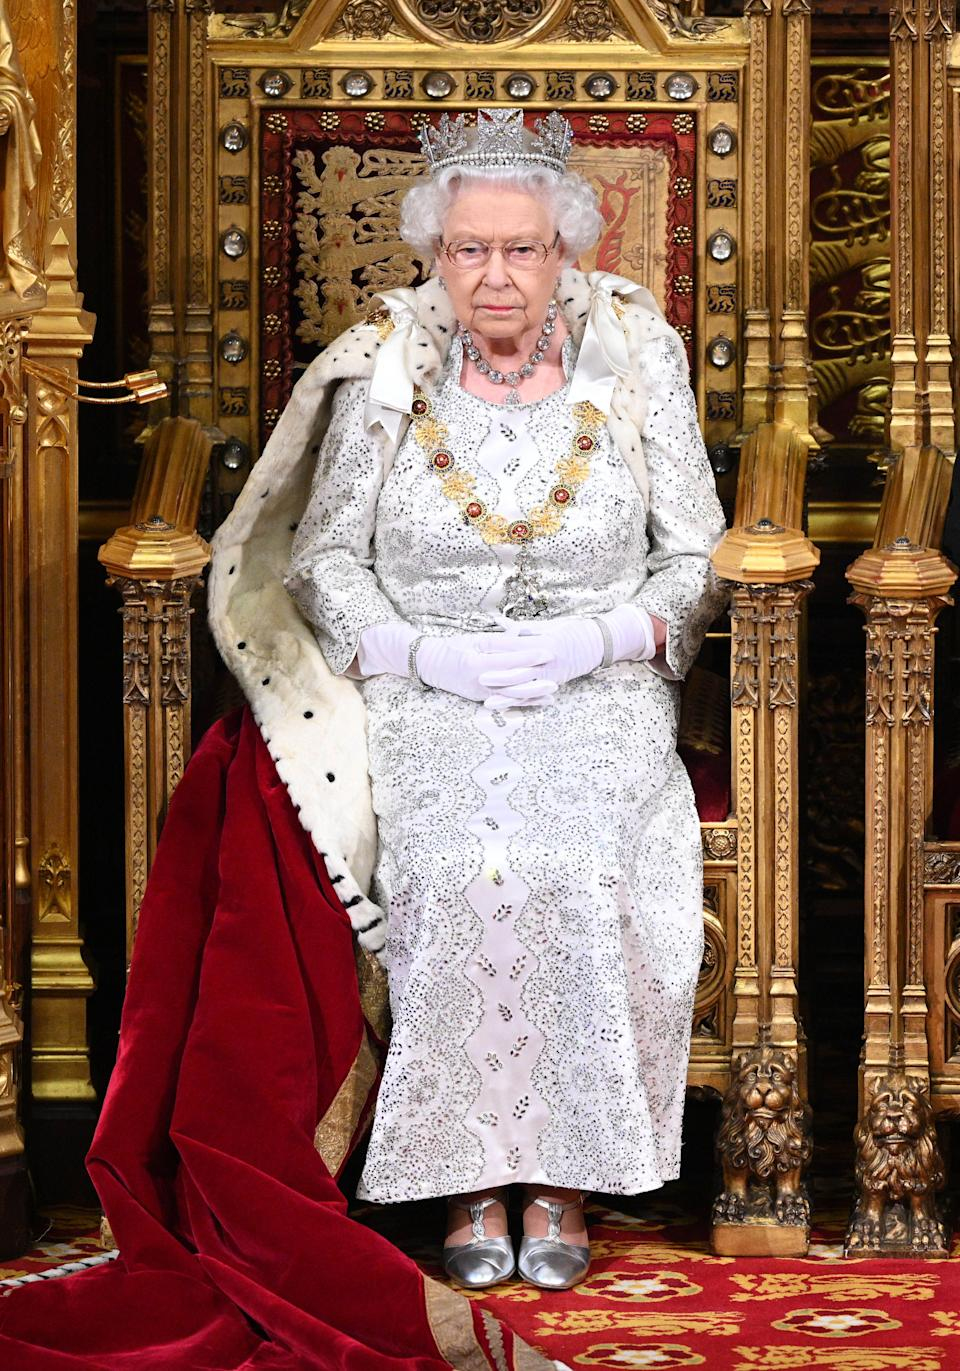 Britain's Queen Elizabeth II takes her seat on the The Sovereign's Throne in the House of Lords at the State Opening of Parliament in the Houses of Parliament in London on October 14, 2019. - The State Opening of Parliament is where Queen Elizabeth II performs her ceremonial duty of informing parliament about the government's agenda for the coming year in a Queen's Speech. (Photo by Paul Edwards / POOL / AFP) (Photo by PAUL EDWARDS/POOL/AFP via Getty Images)